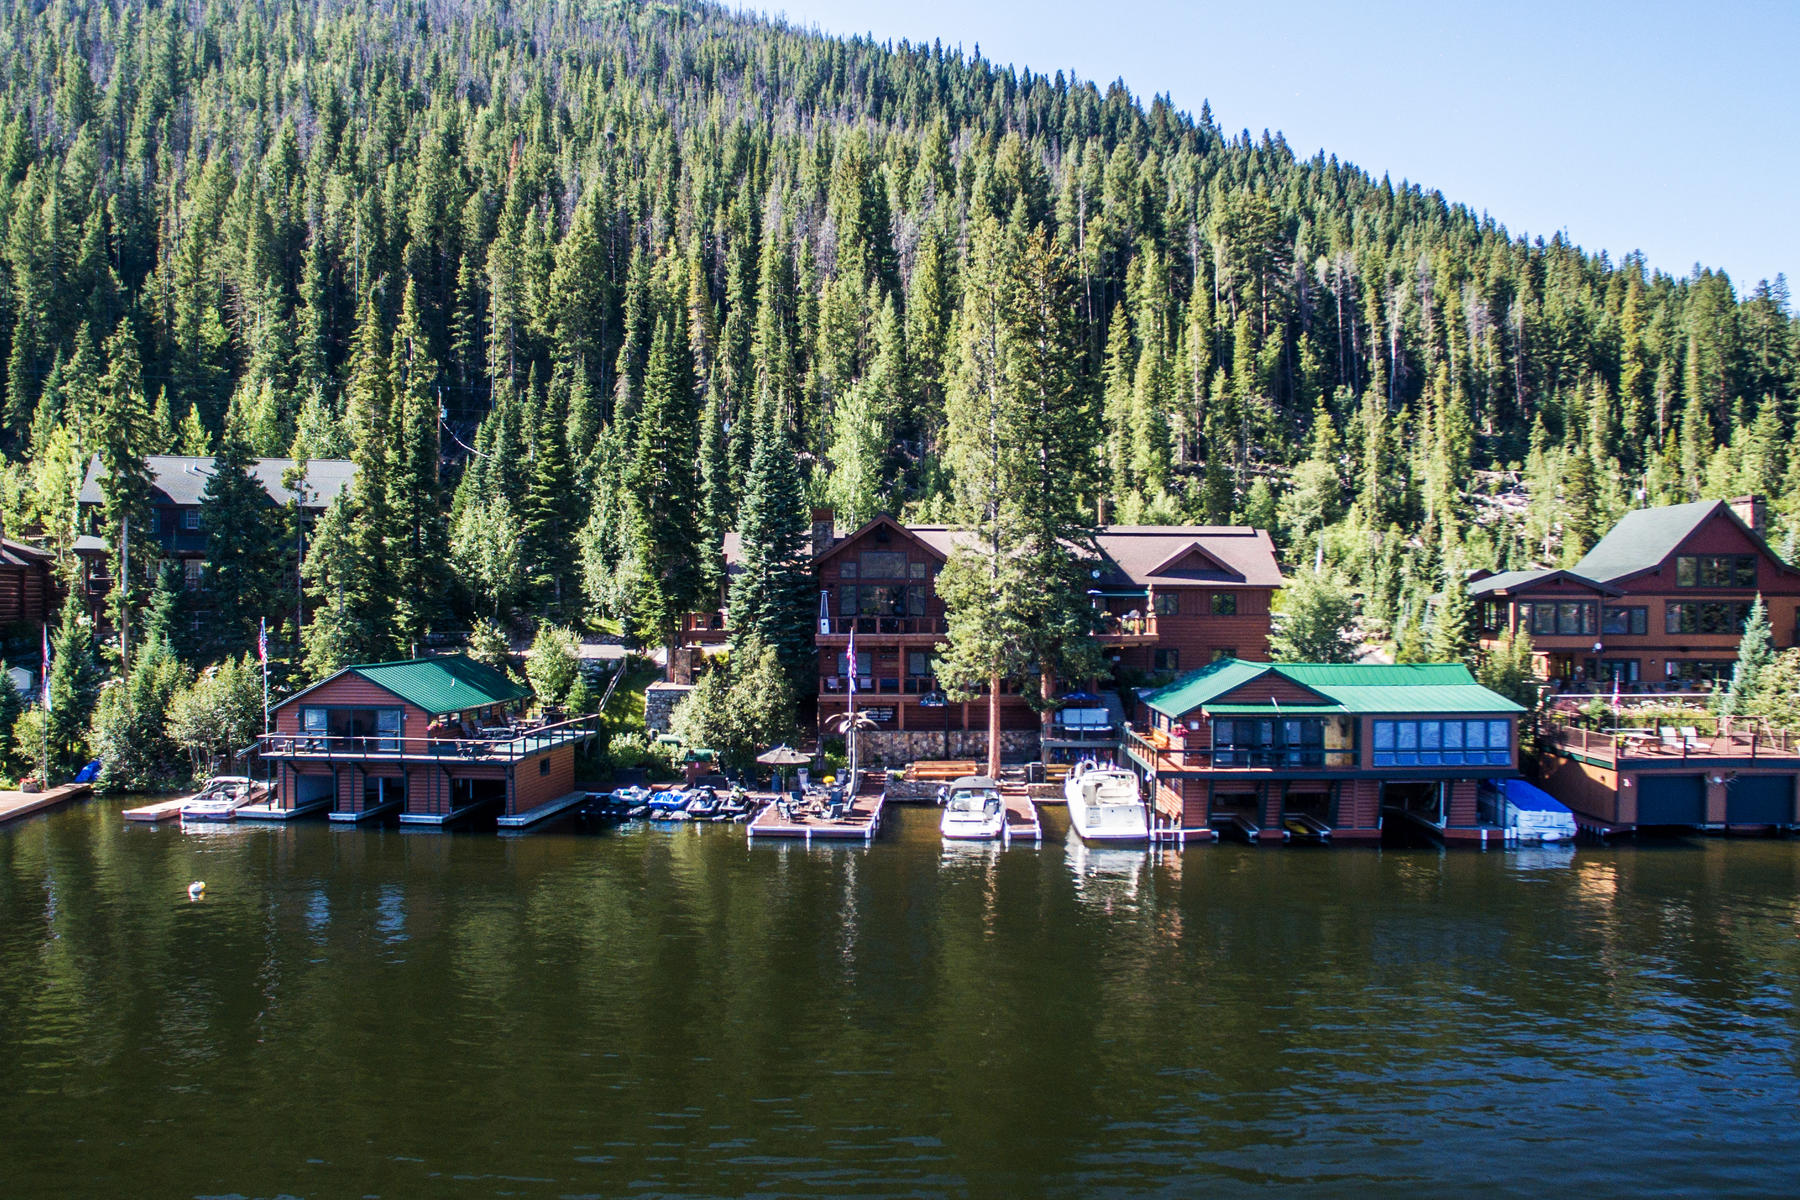 Casa Unifamiliar por un Venta en A Property Unlike Any Other On Grand Lake! 500-504 and 514 CR 697 (Jericho Road) Grand Lake, Colorado 80447 Estados Unidos